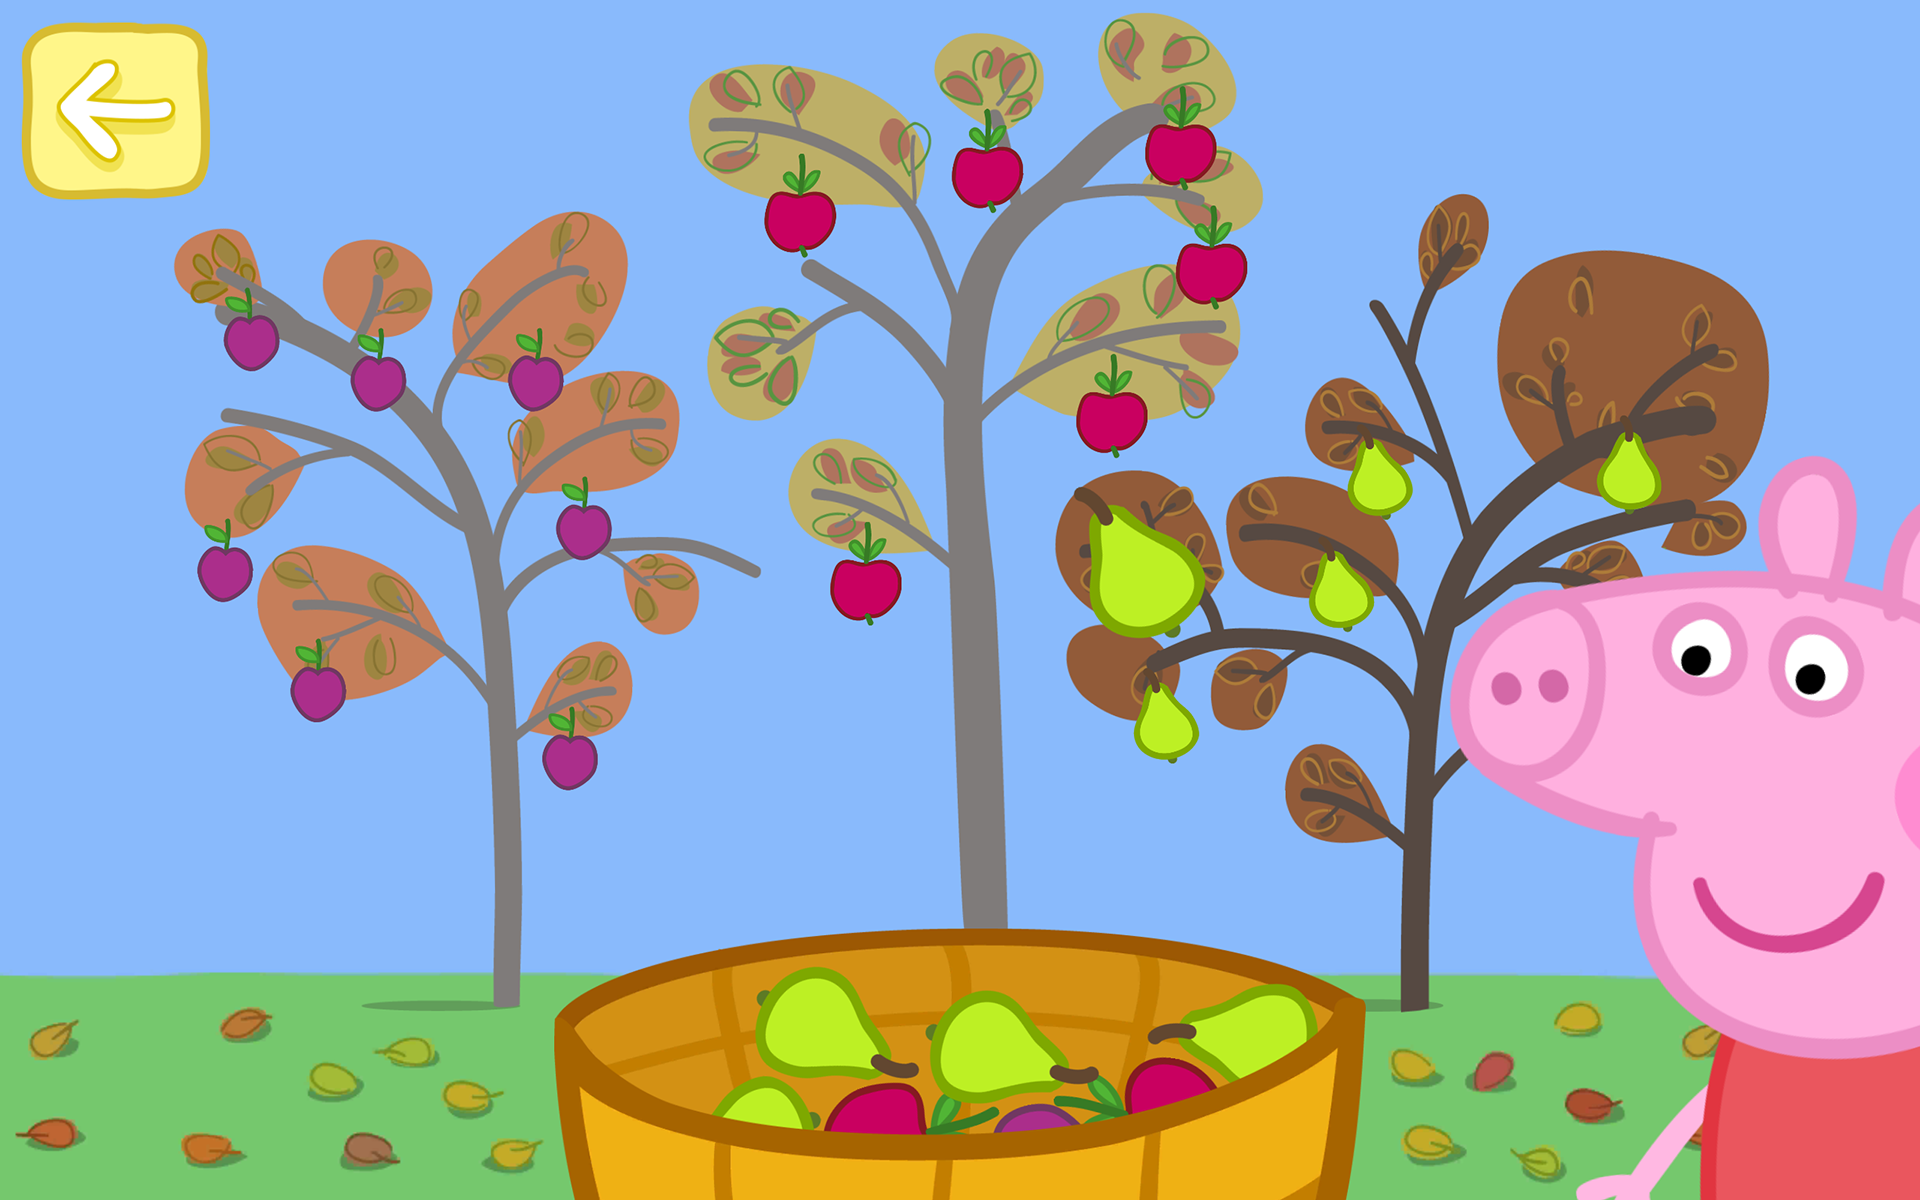 Amazon.com: Peppa Pig: Seasons - Autumn and Winter: Appstore for